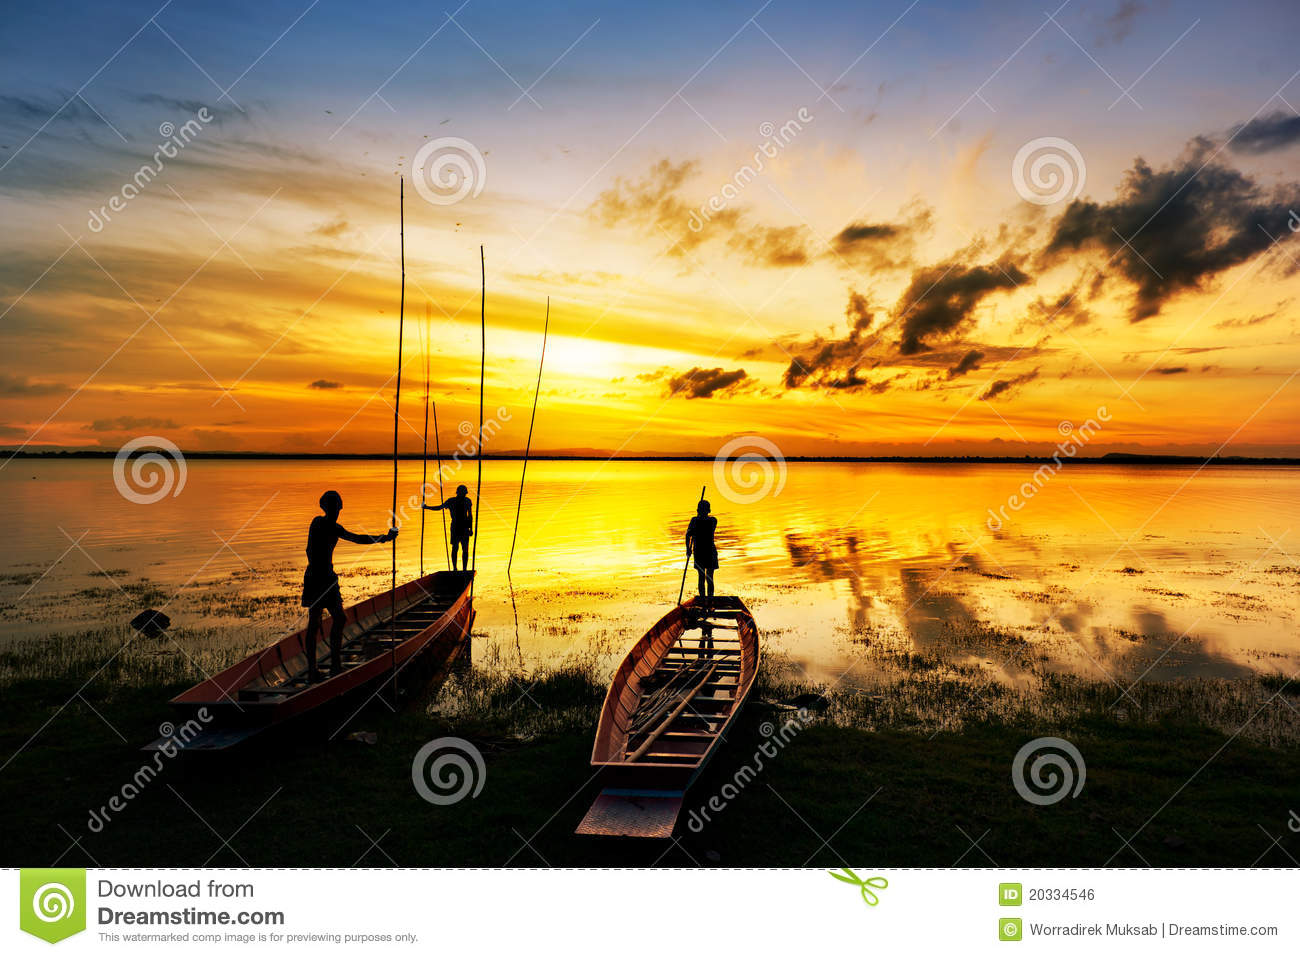 Silhouette Of Children On Boat Stock Photo